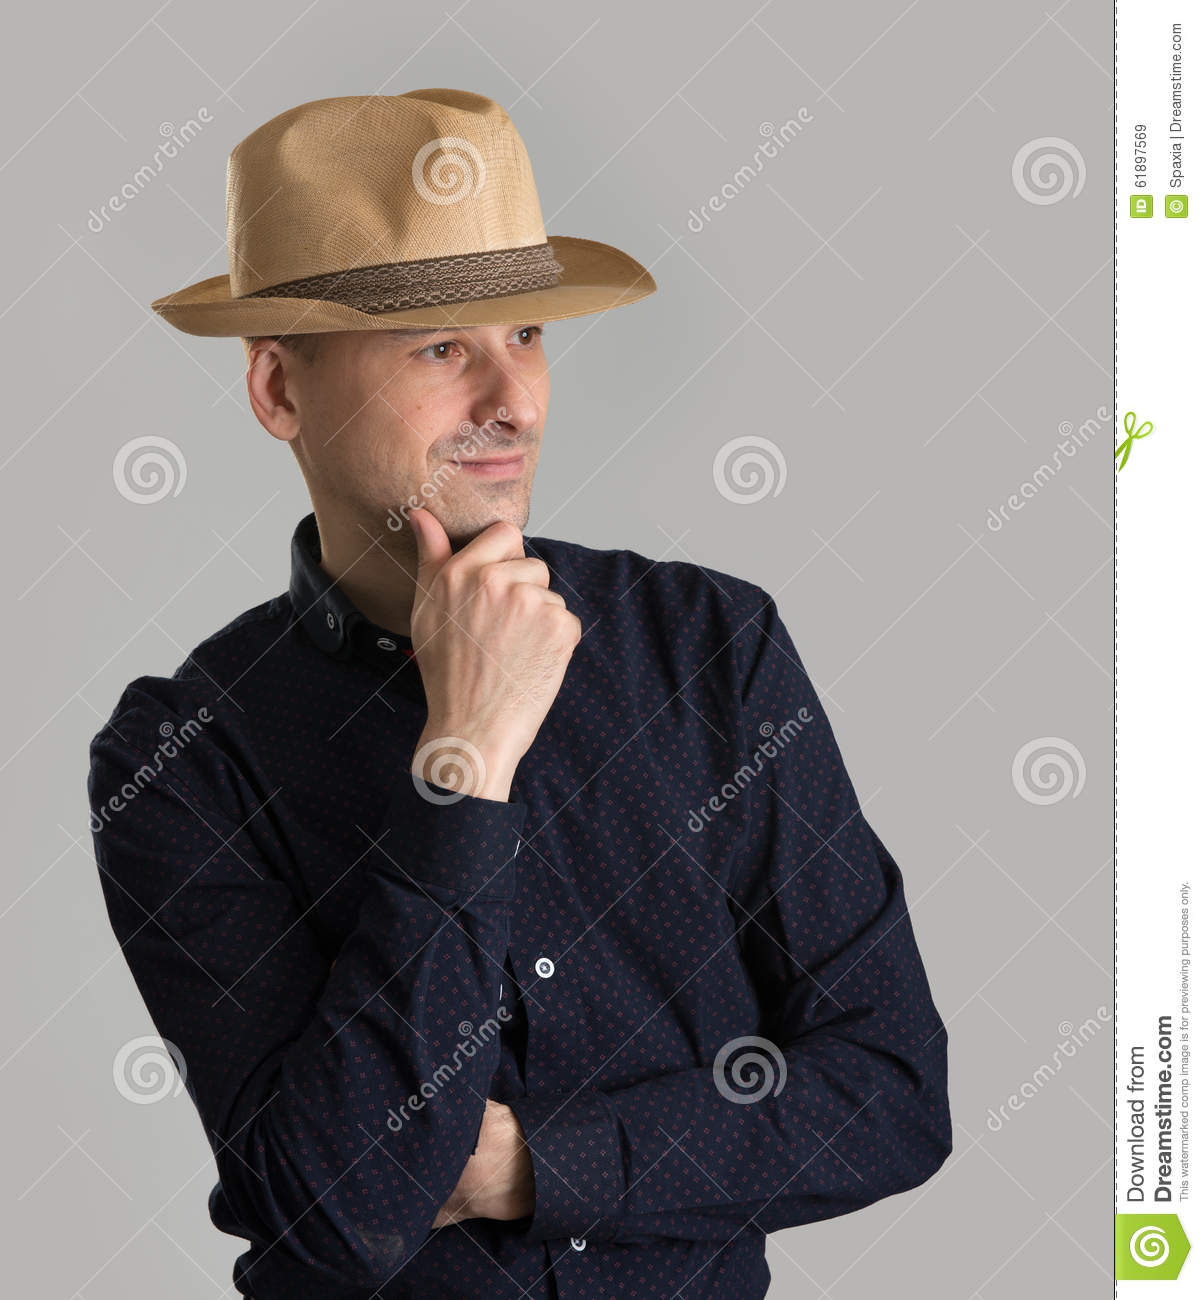 33bf9e843760e Man Wearing Fedora Hat Stock Photo 61897569 - Megapixl